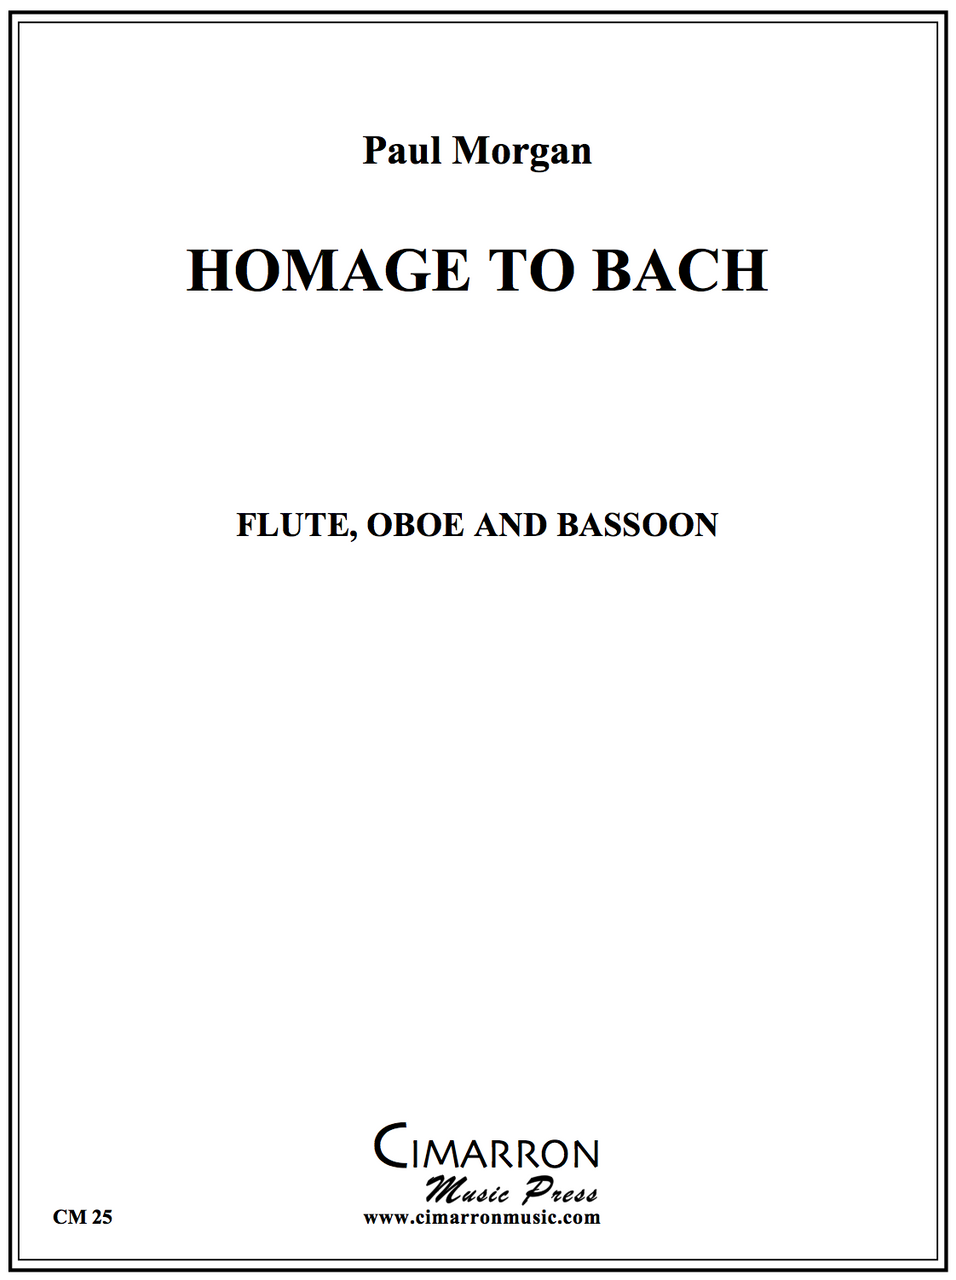 Morgan - Homage to Bach - Flute, Oboe And Bassoon